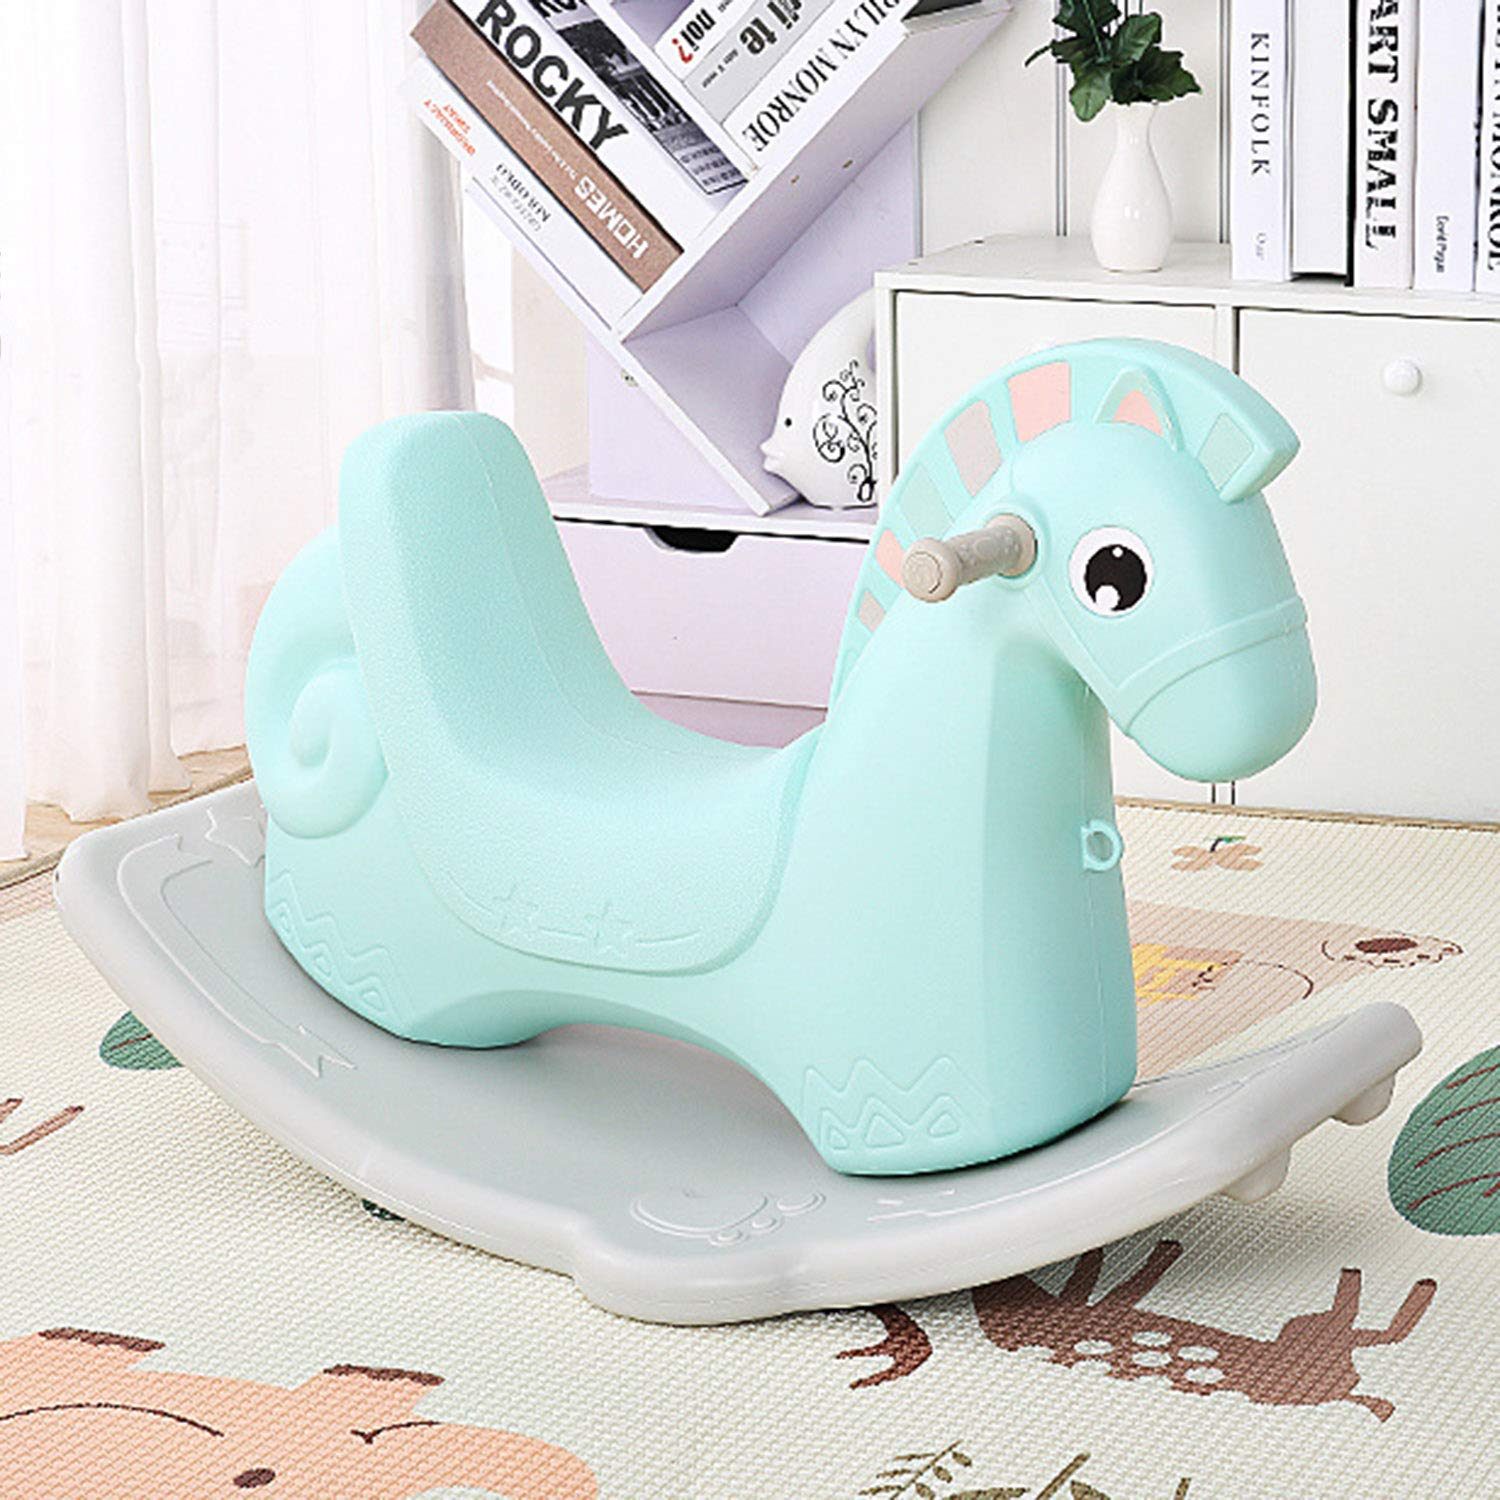 AIBAB Baby Rocking Horse Tumbler Baby Comfort Chair Thick Plastic Multifunction Nursery Boy Girl Toy Gift by AIBAB (Image #2)